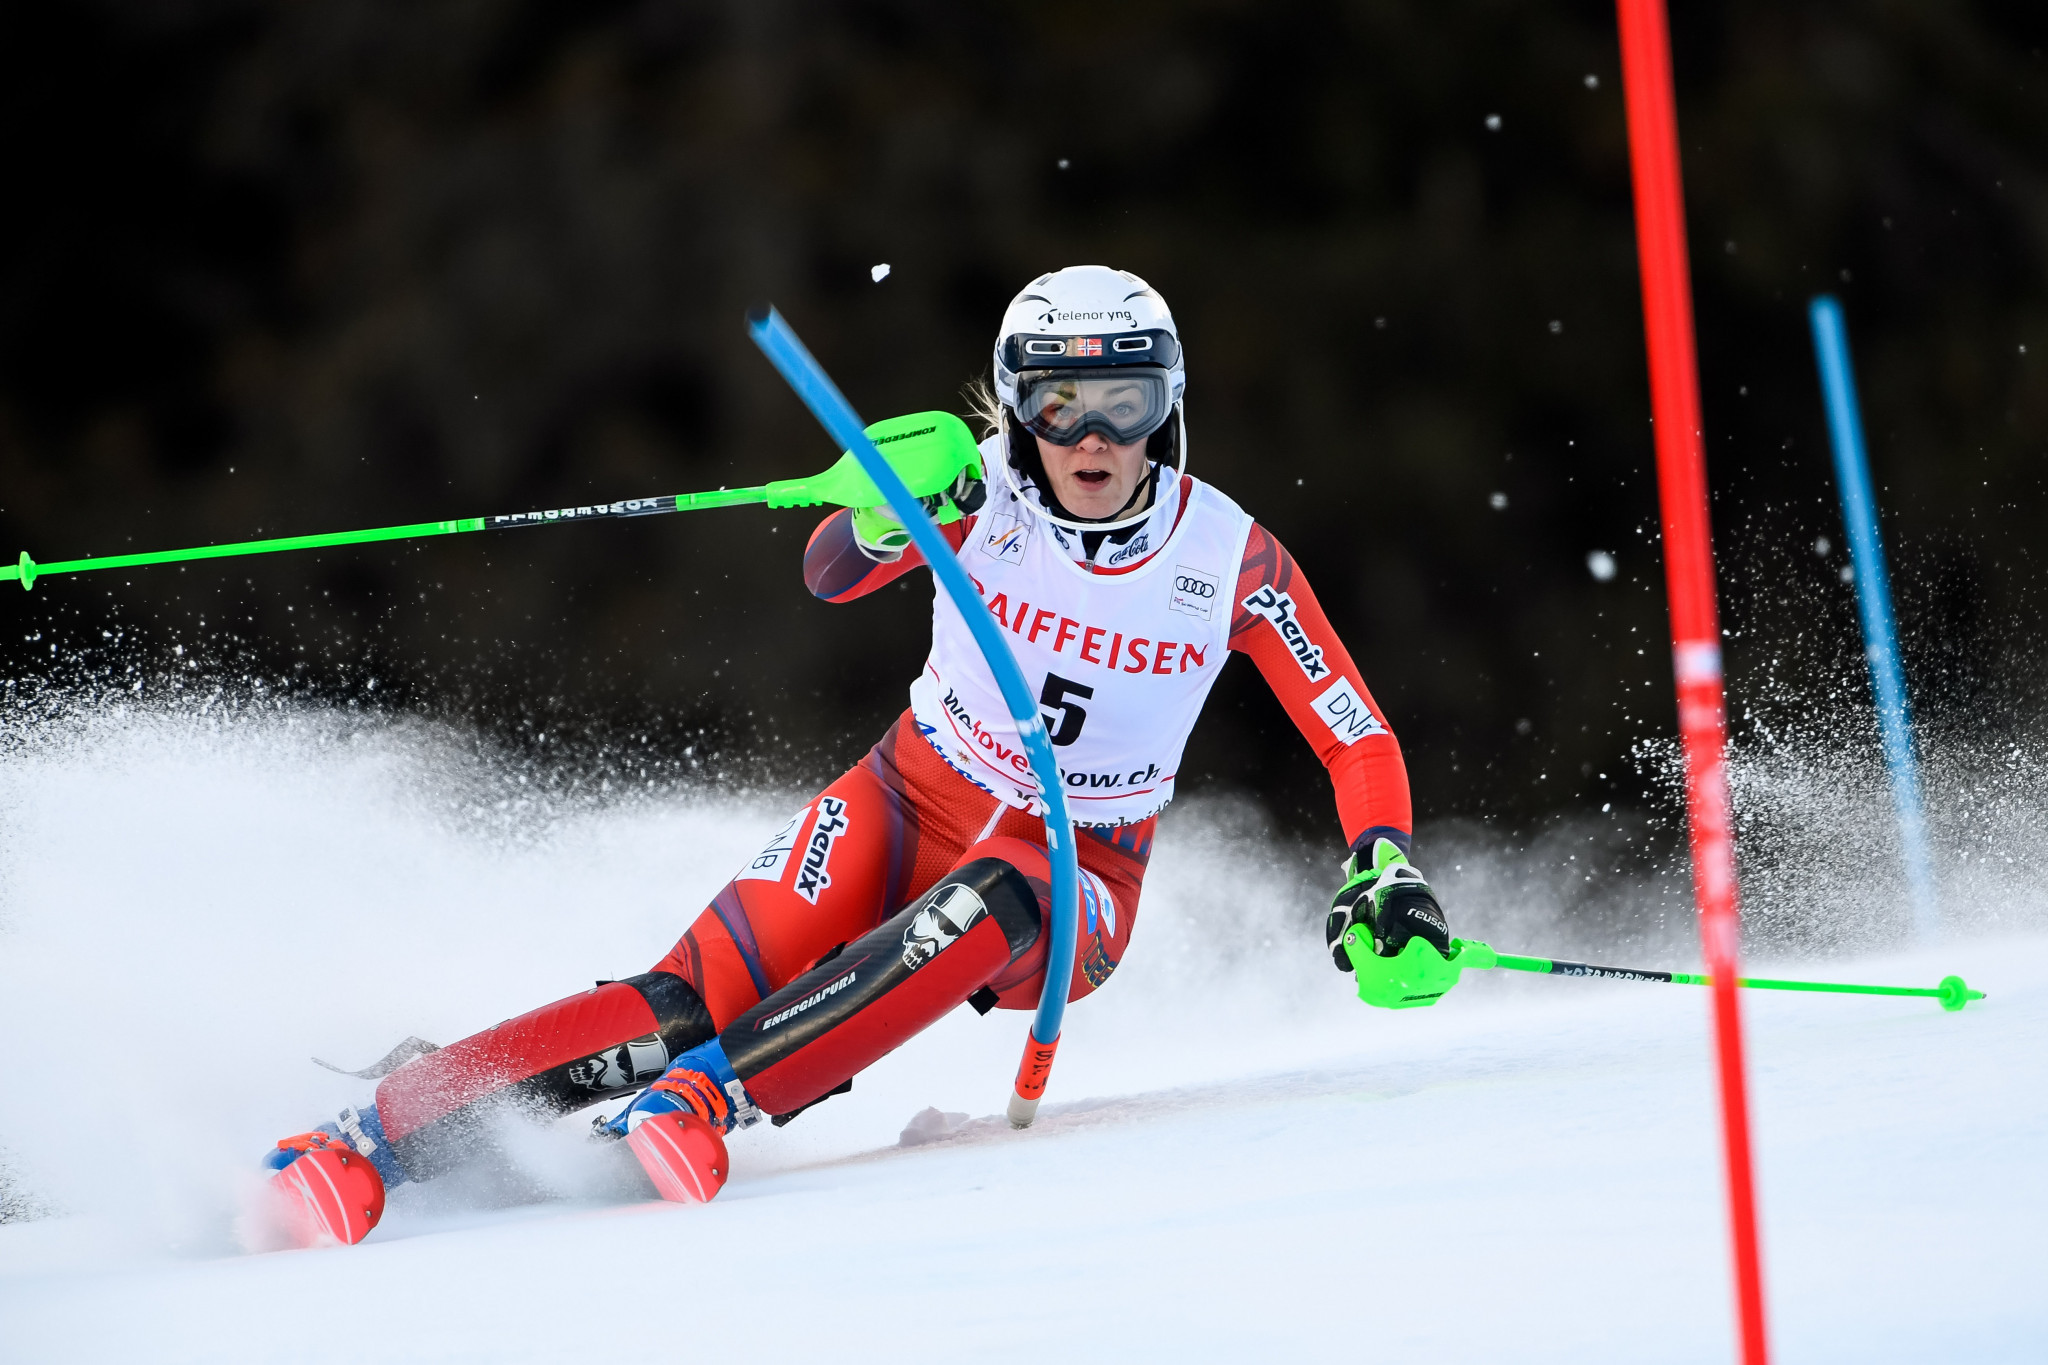 Norway's Nina Haver-Loeseth won the women's parallel slalom city event ©Getty Images